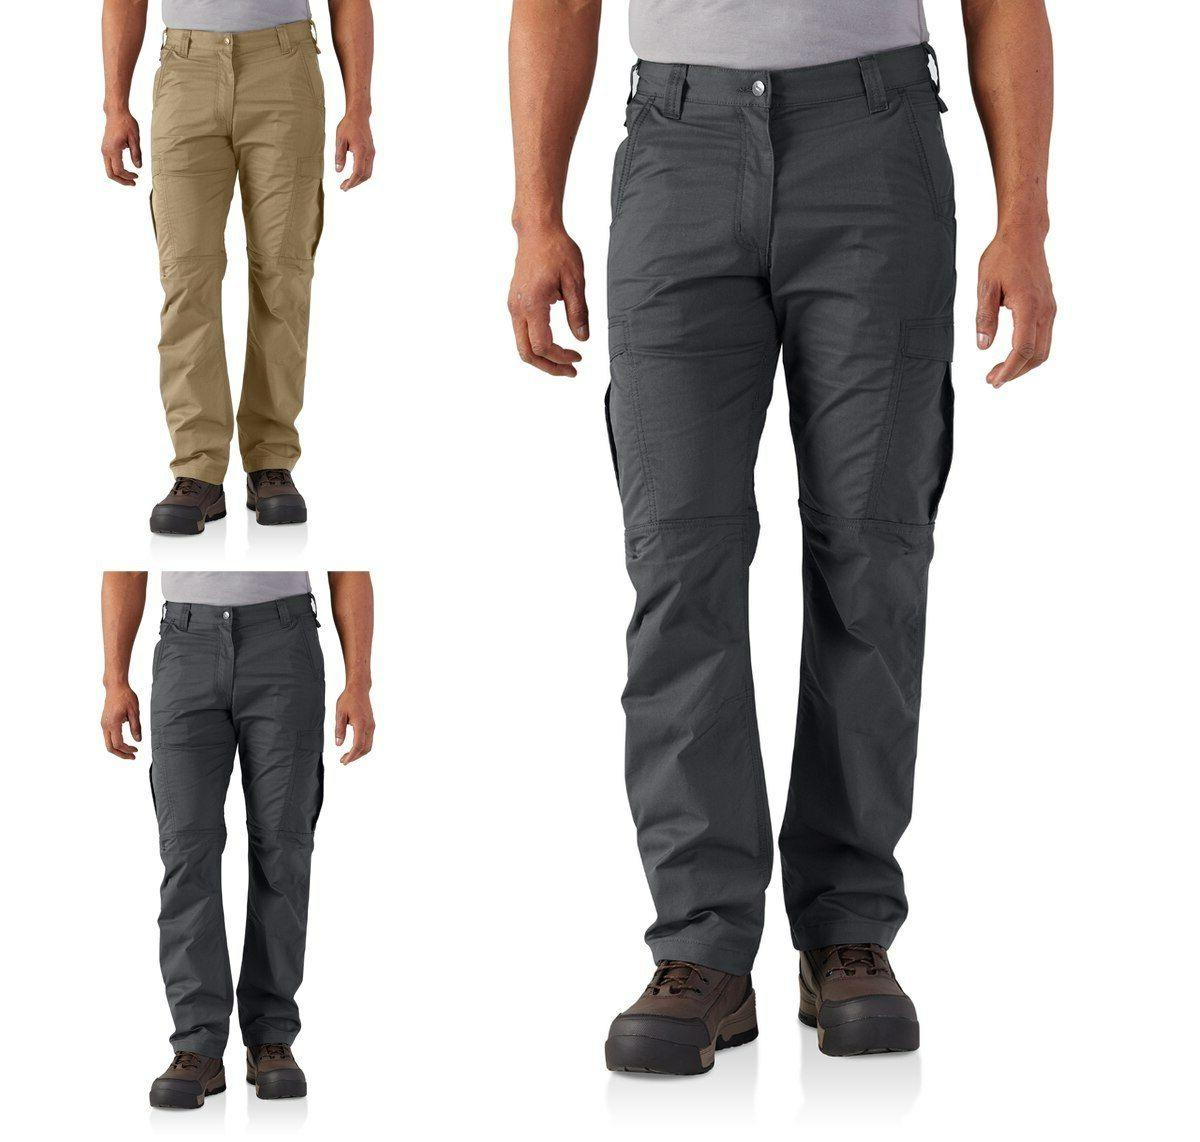 force extremes cargo pants